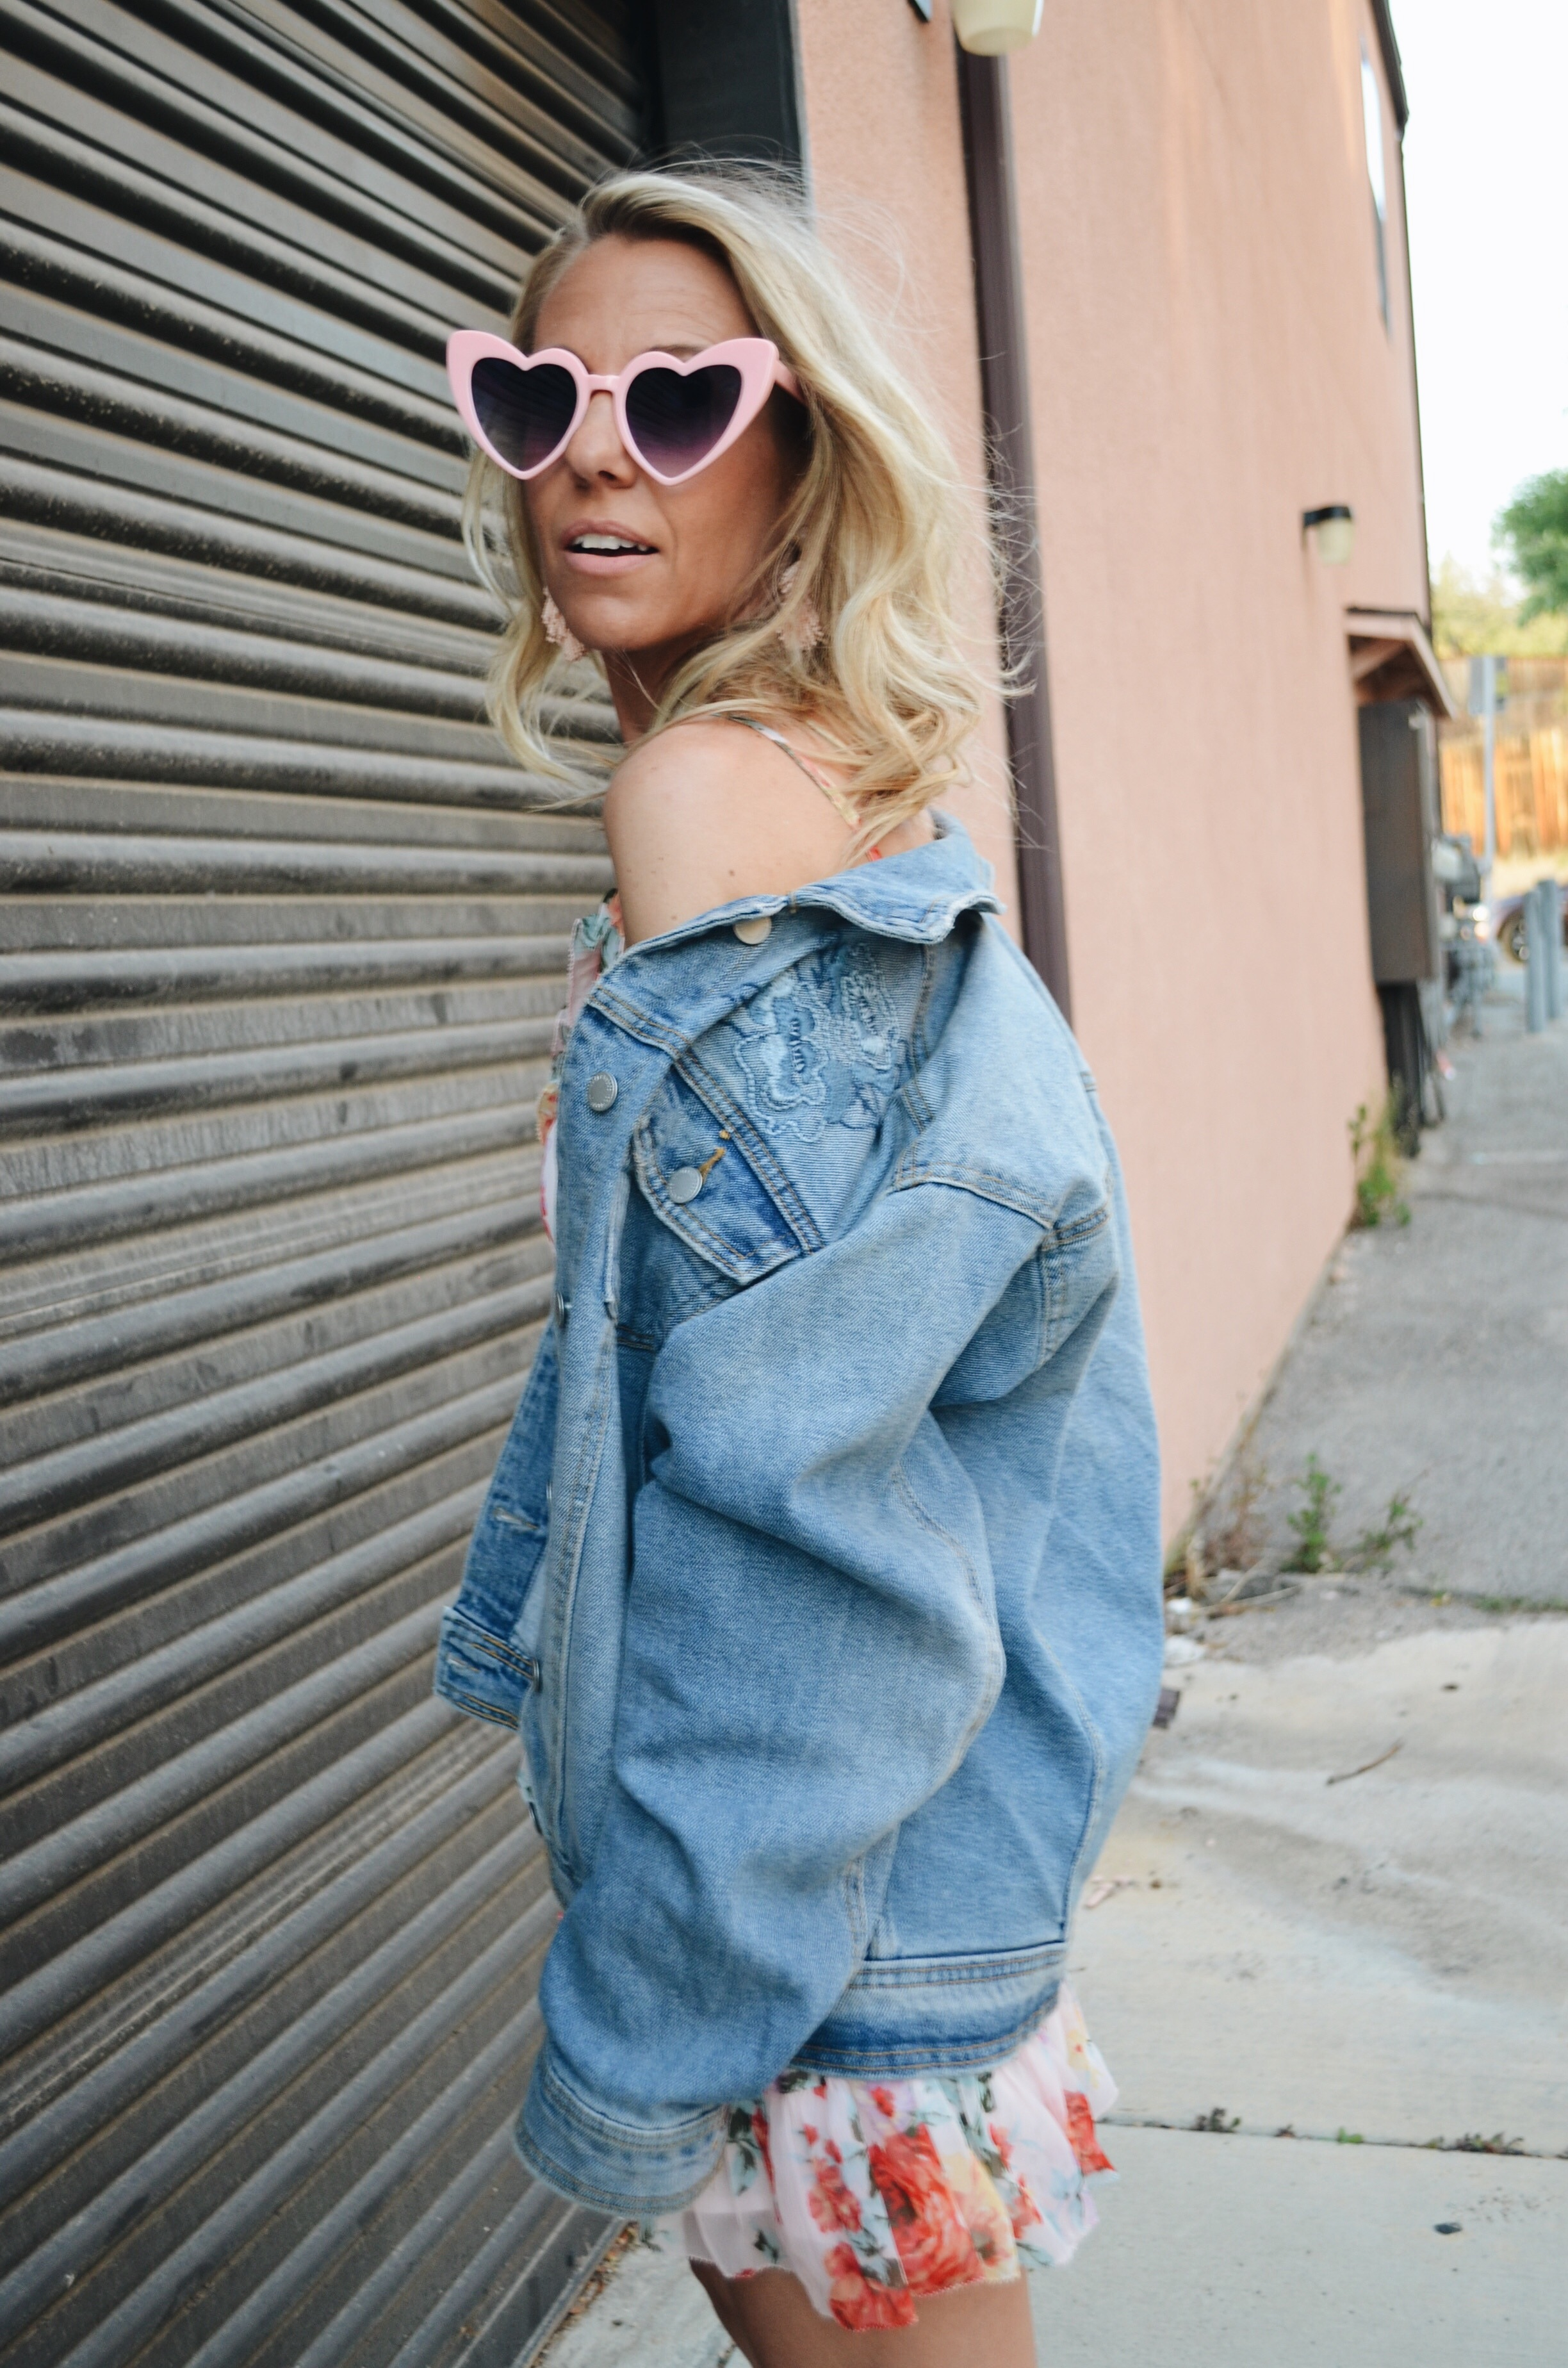 DENIM BOYFRIEND JACKET- Jaclyn De Leon Style + oversized jean jacket + target style + heart sunglasses + pink floral dress + Universal Thread + spring style + casual street style + mom style +embroidered denim